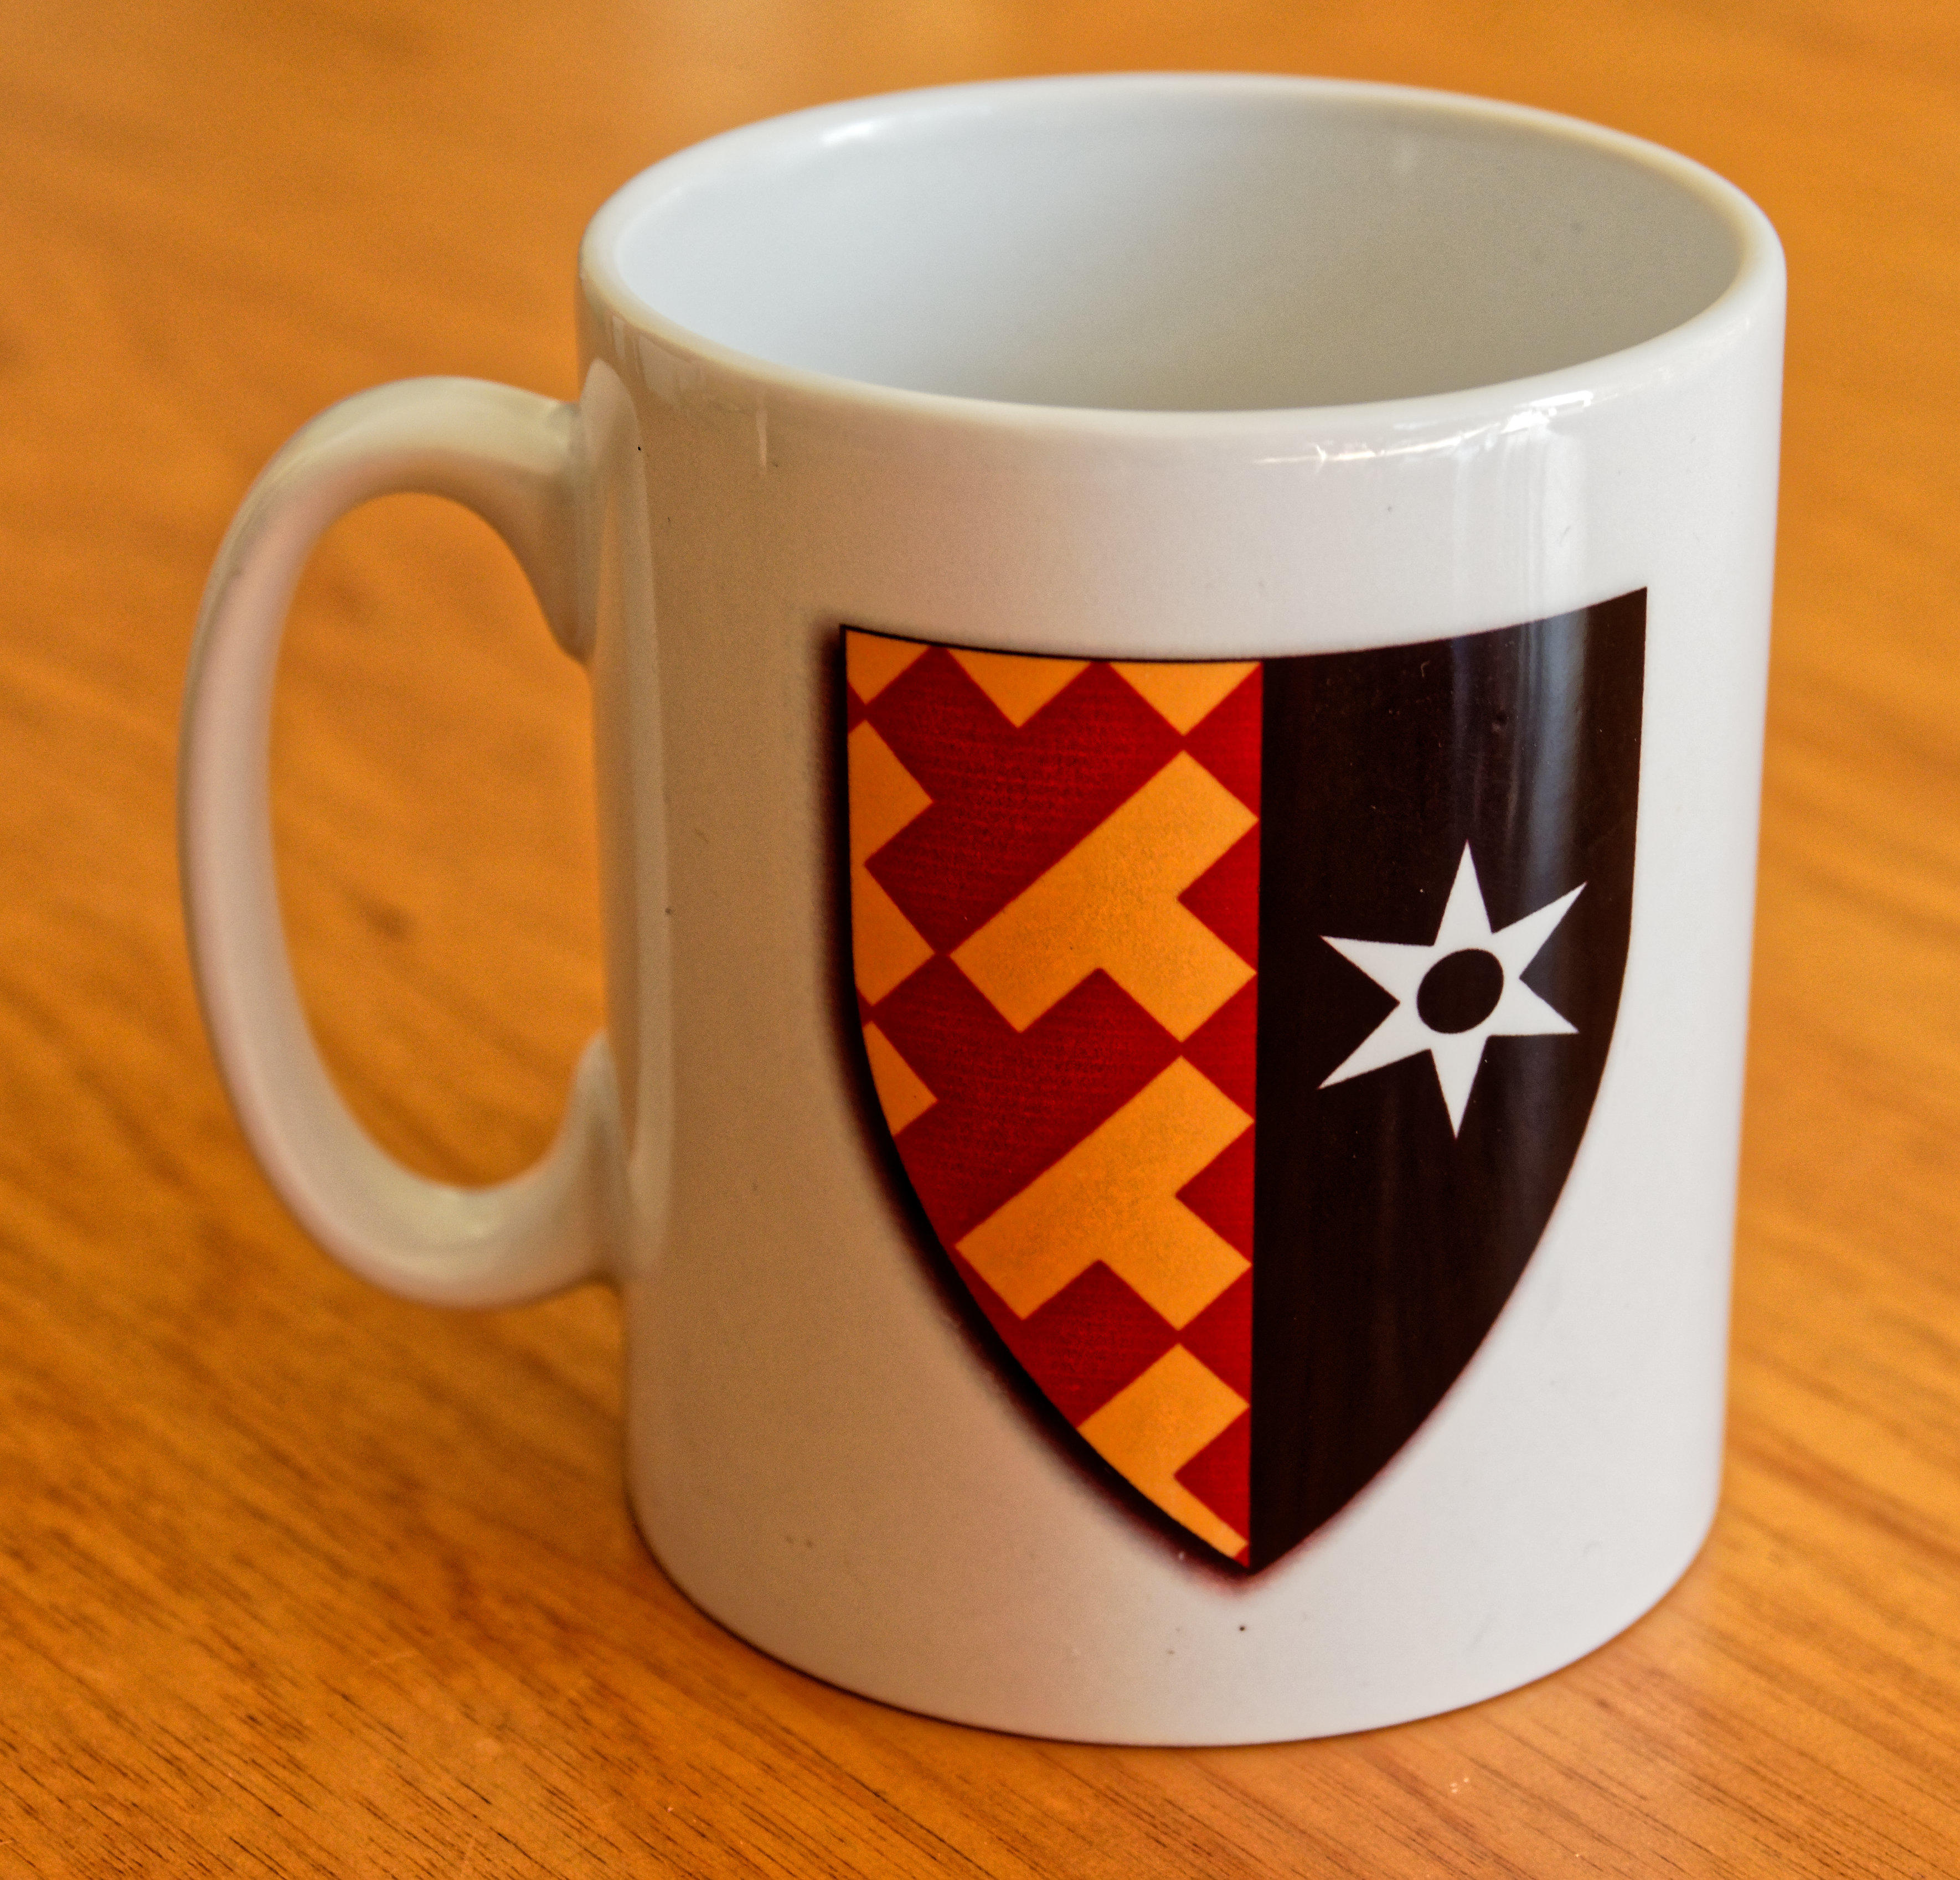 Coat-of-arms-mug.jpeg